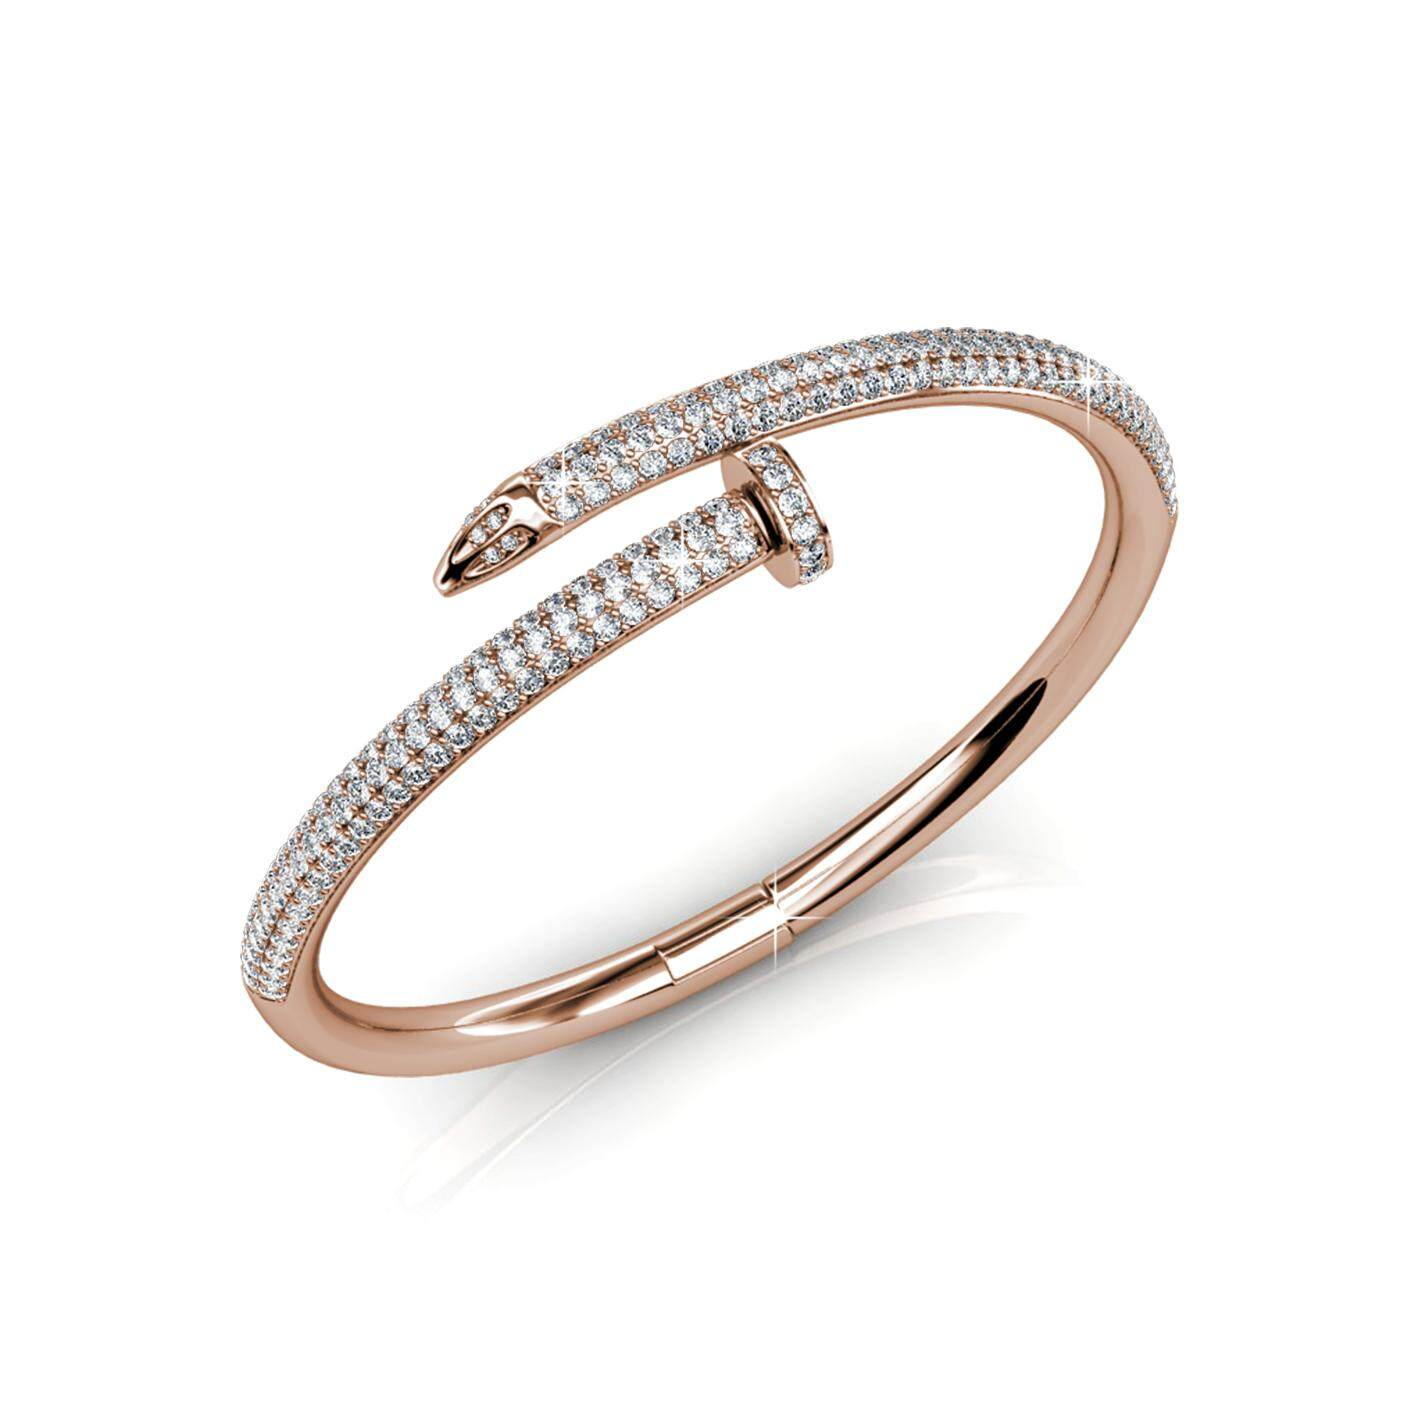 Her Jewellery Nail Bangle (White / Rose Gold) embellished with Crystals from Swarovski